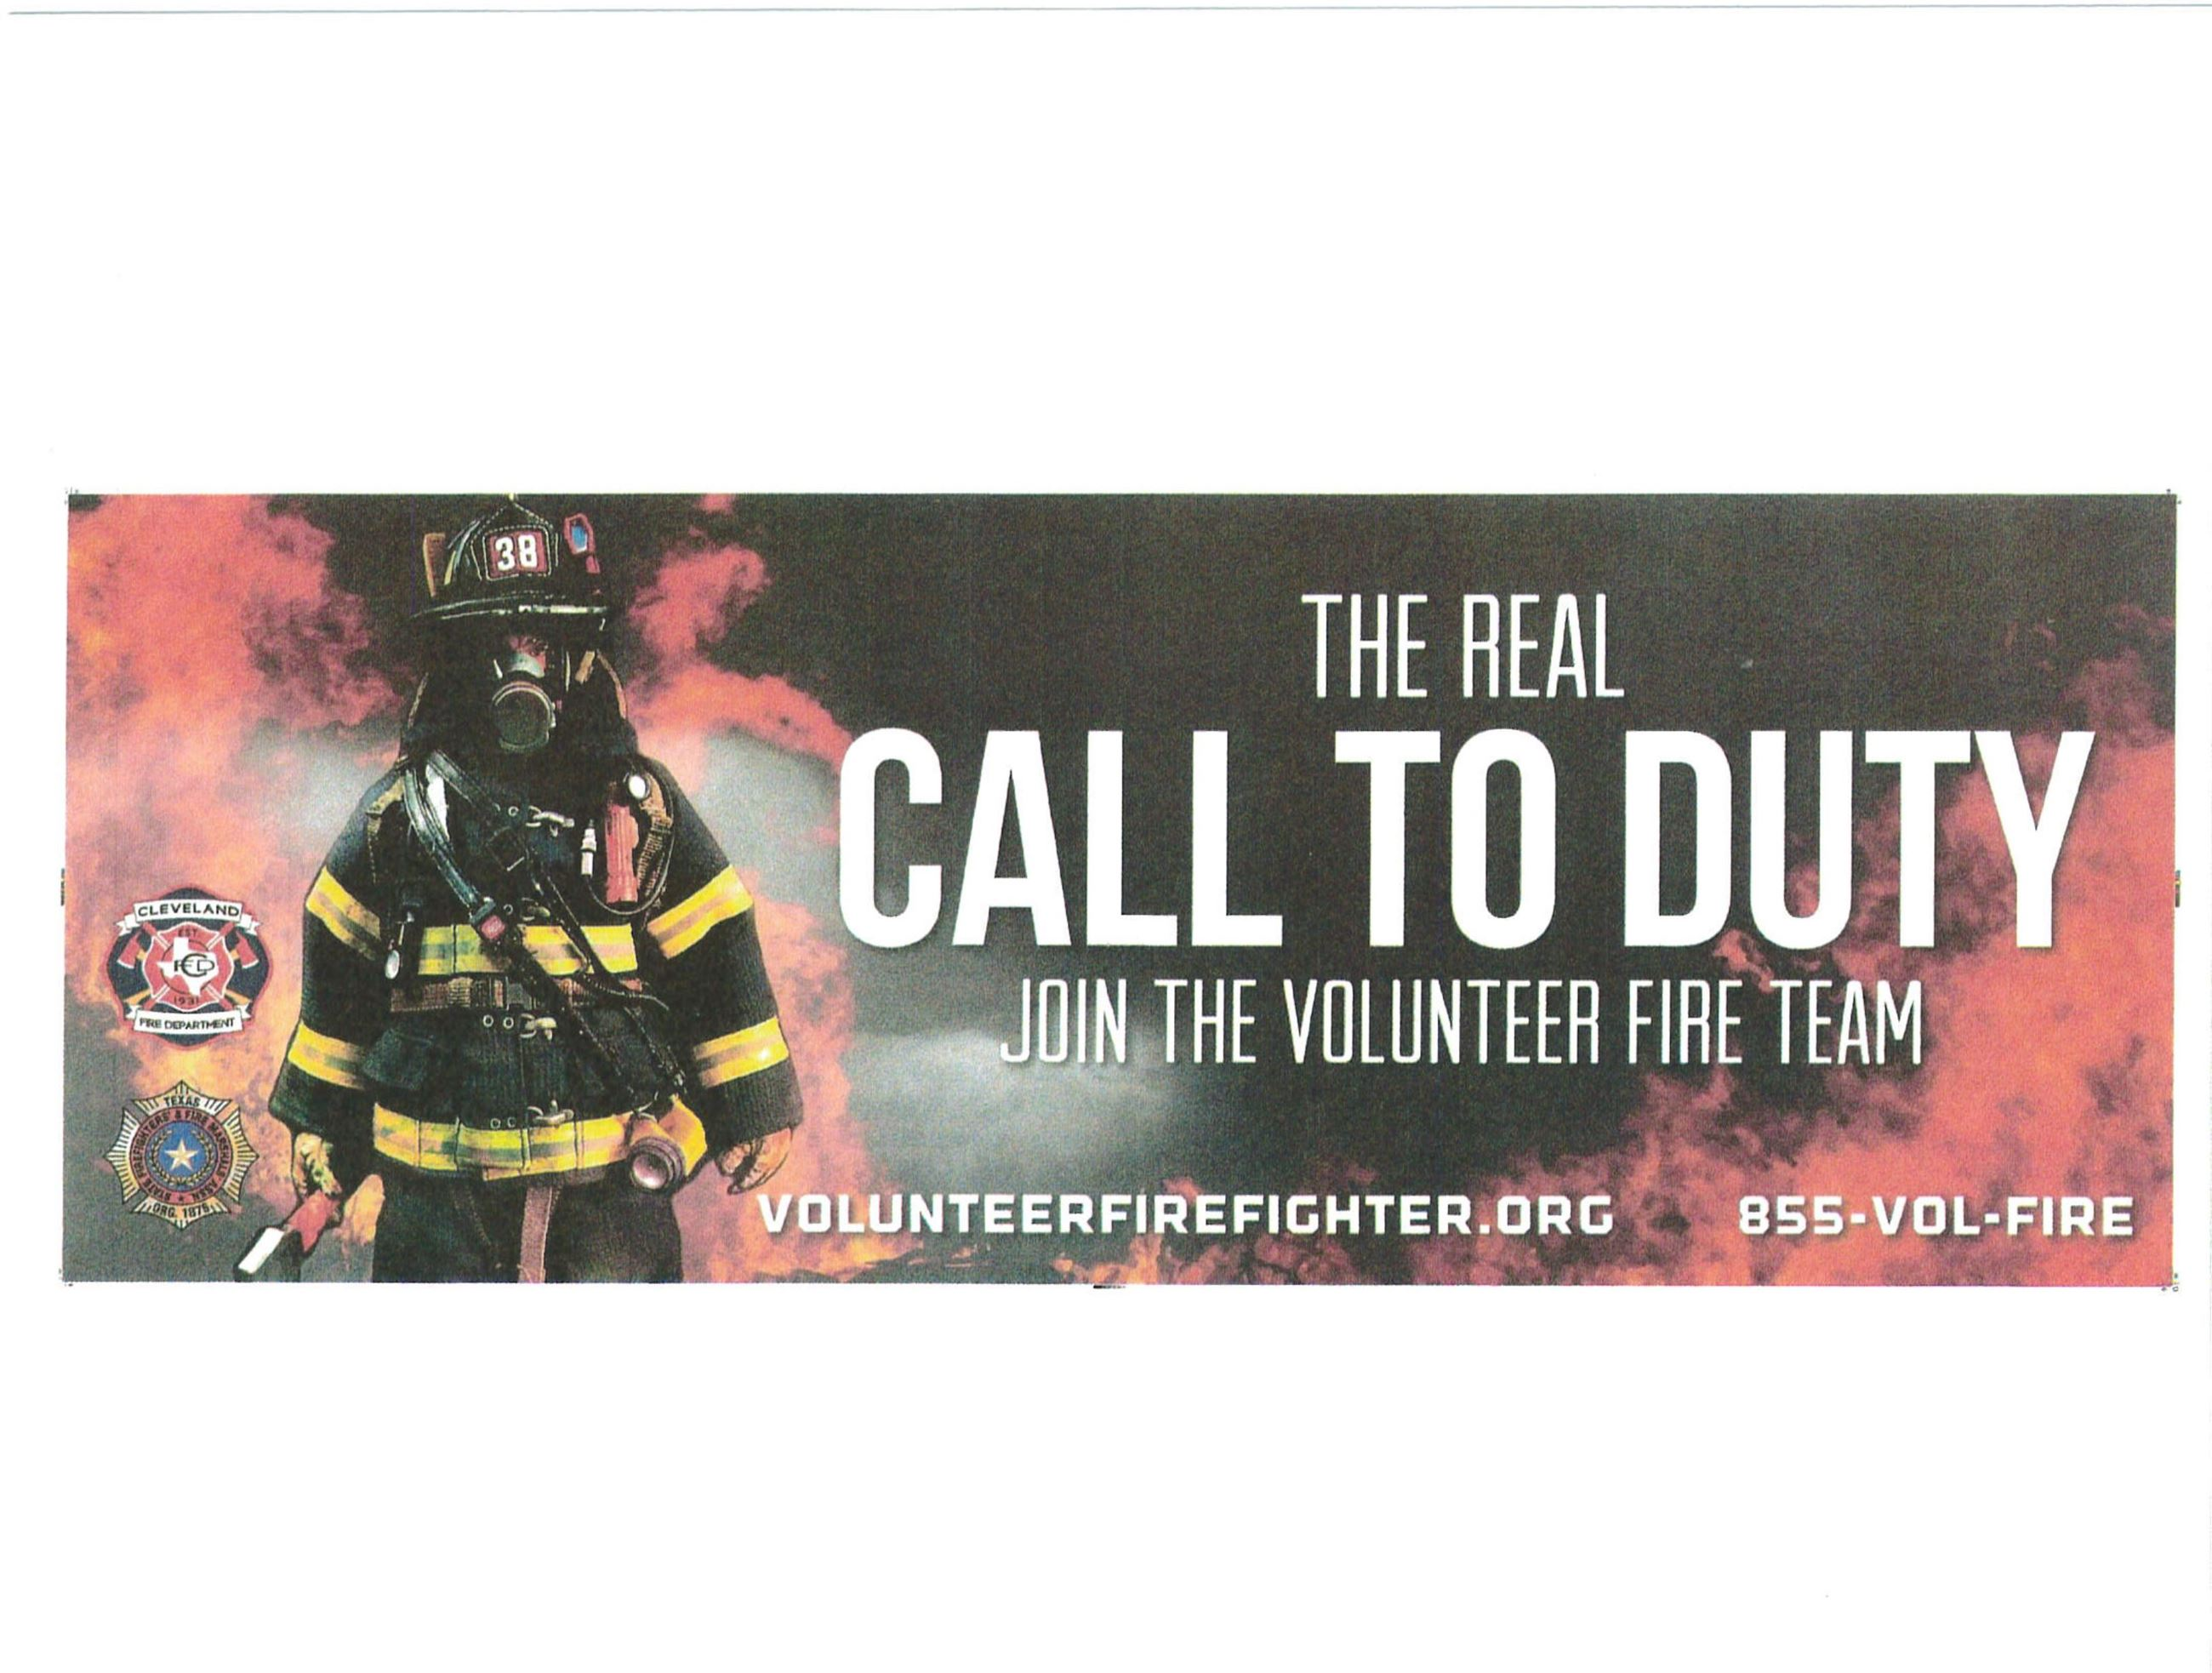 firefighter flyer002